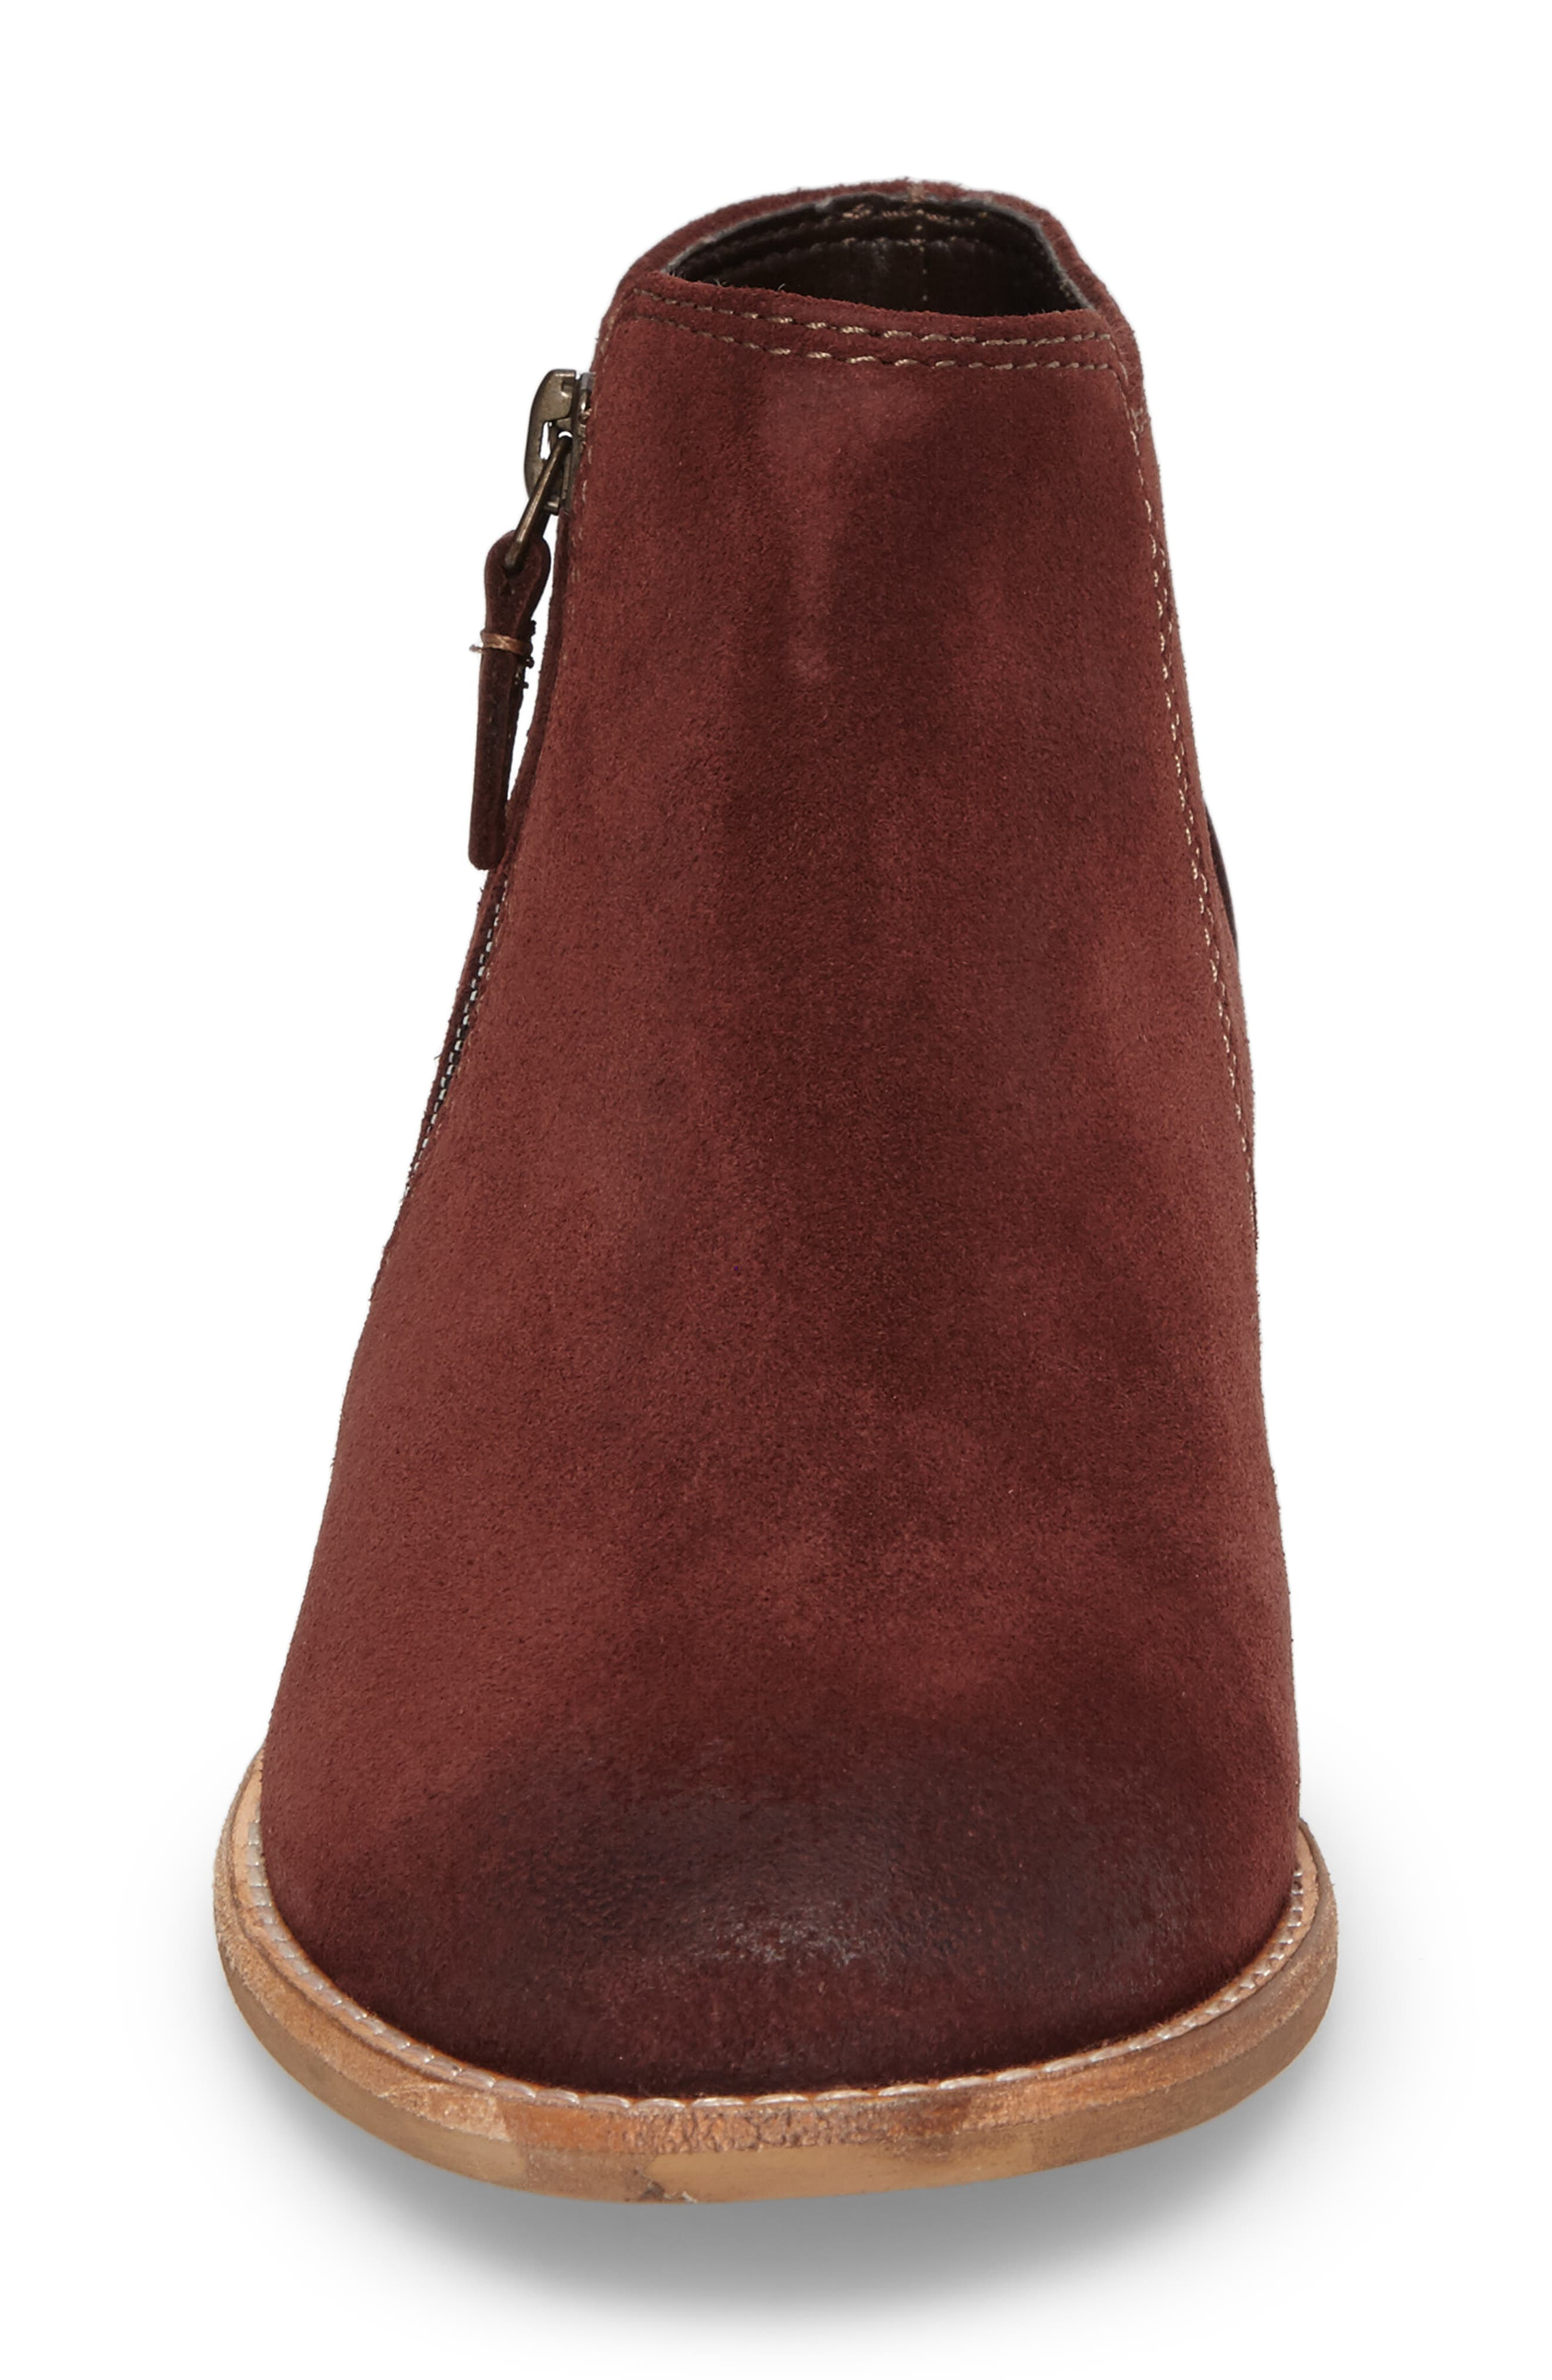 CLARKS<SUP>®</SUP>, Maypearl Juno Ankle Boot, Alternate thumbnail 4, color, MAHOGANY SUEDE